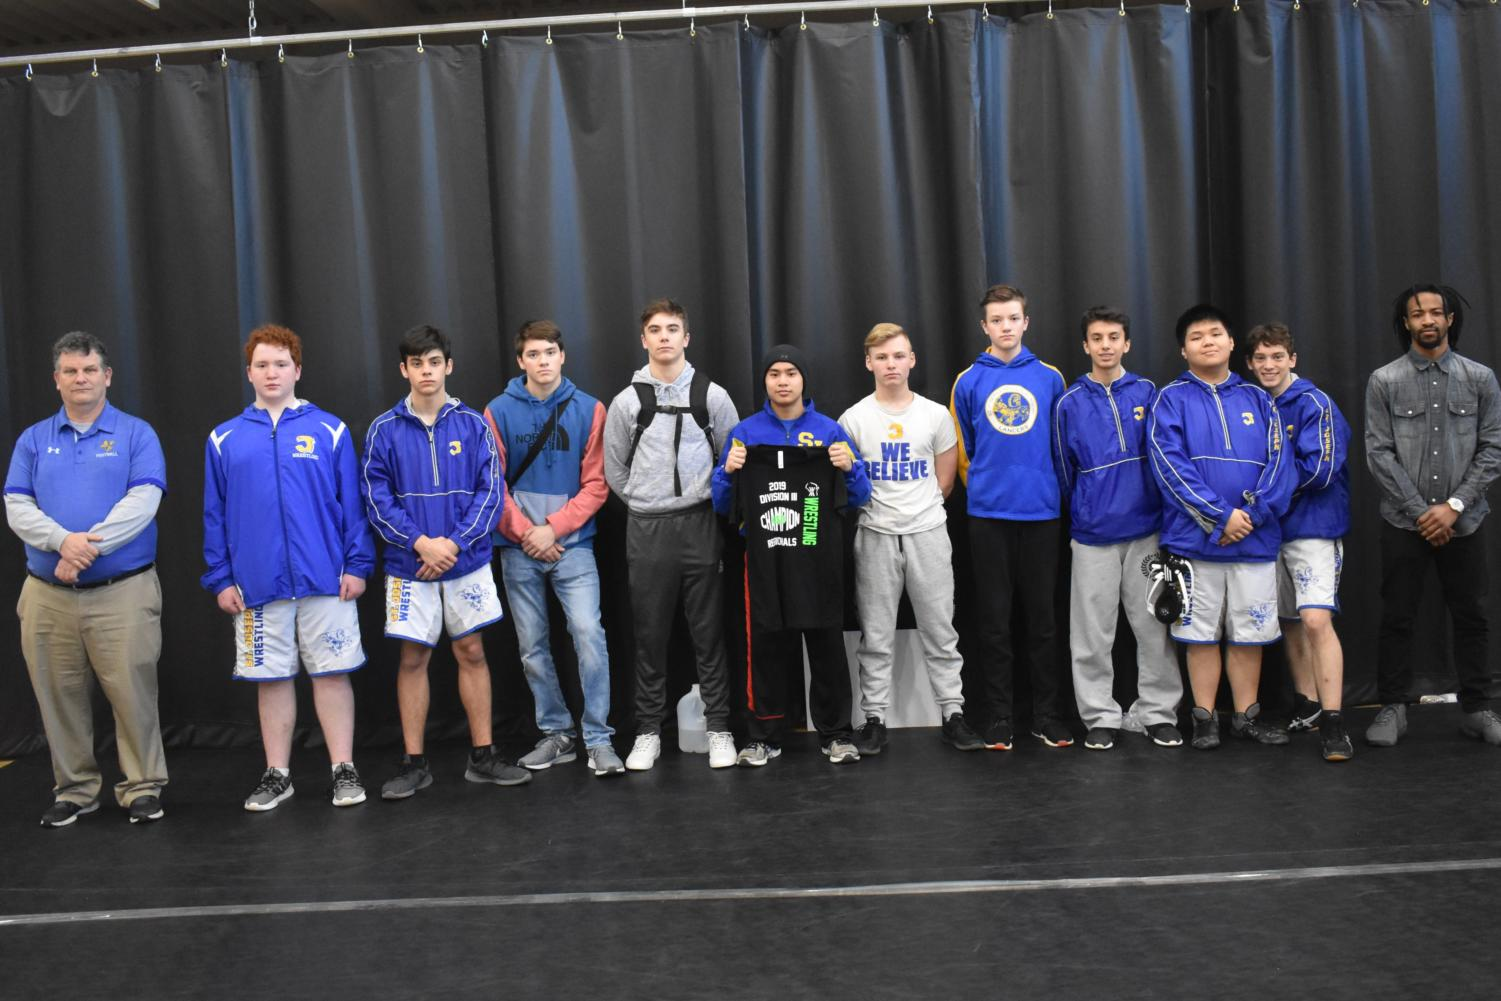 The 2019 St. Joseph Catholic Academy wrestling team fourth at regionals.